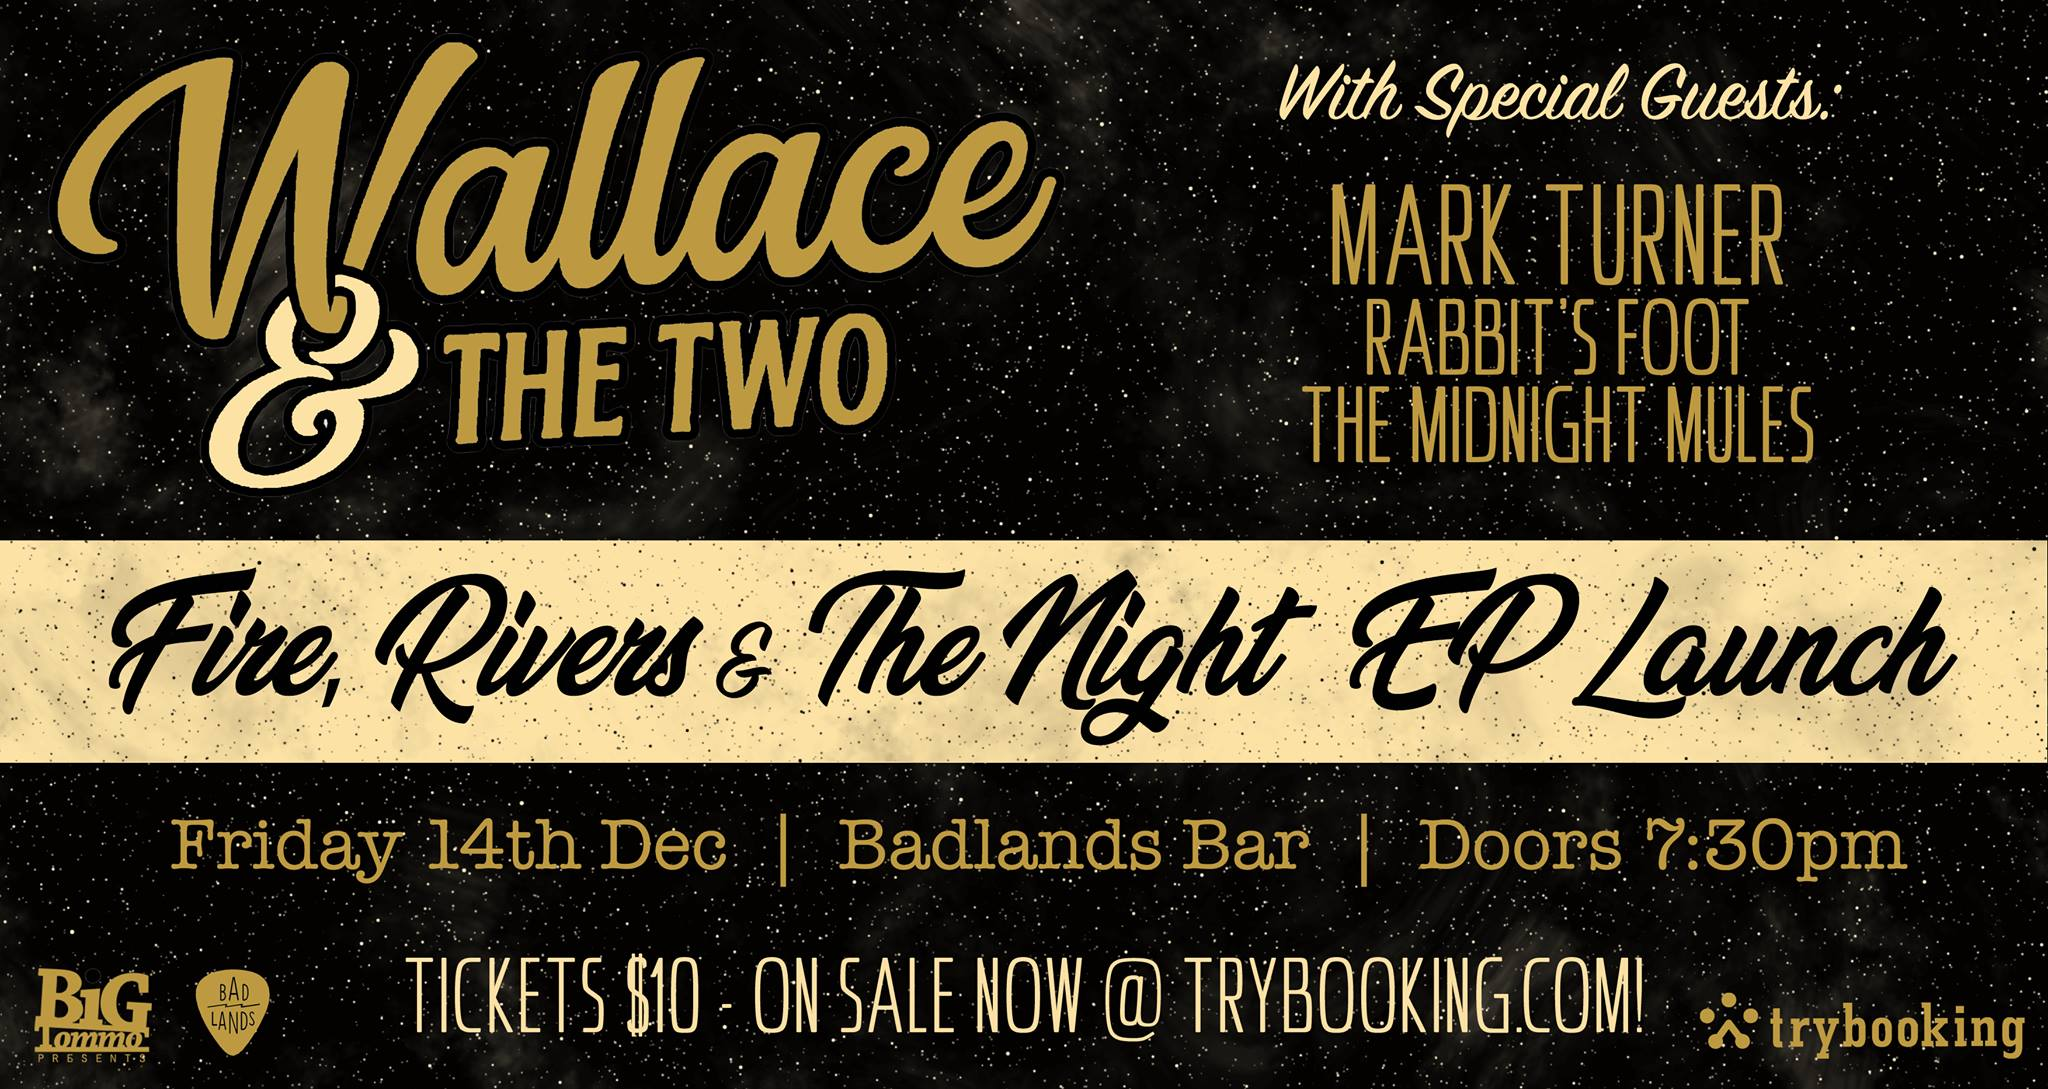 Wallace & The Two EP Launch